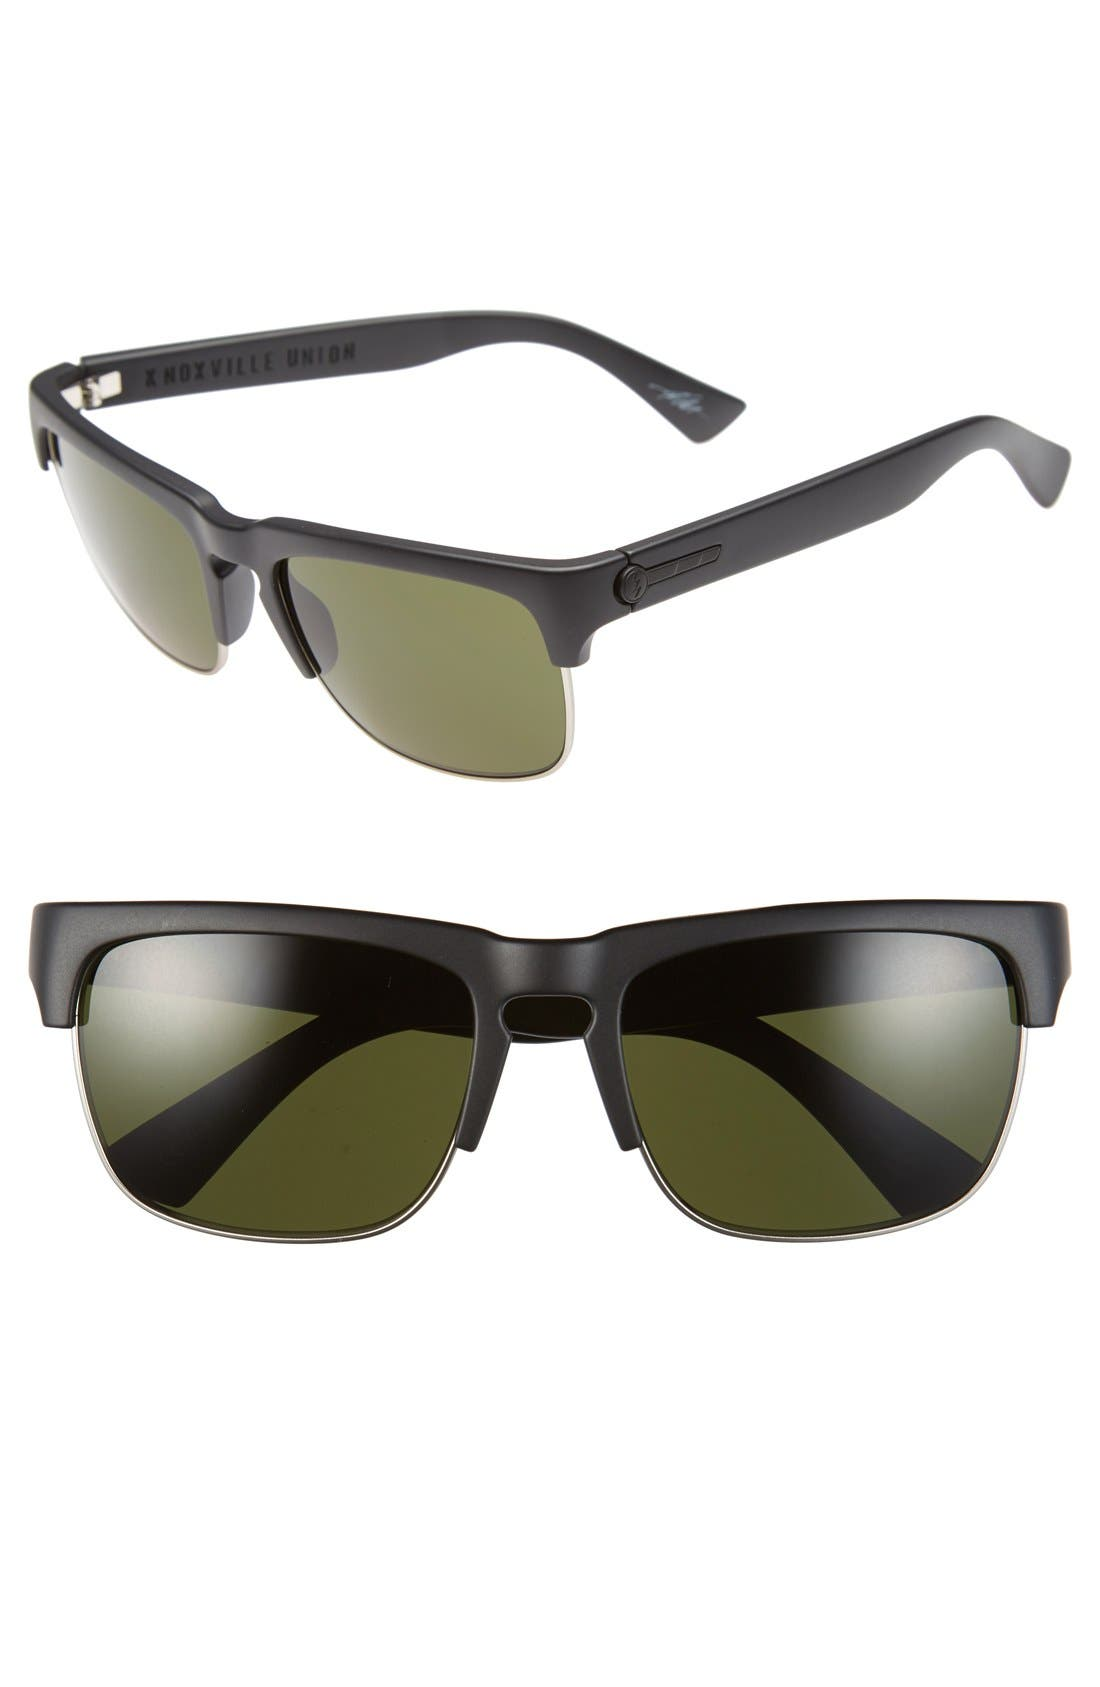 Main Image - ELECTRIC 'Knoxville Union' 55mm Sunglasses